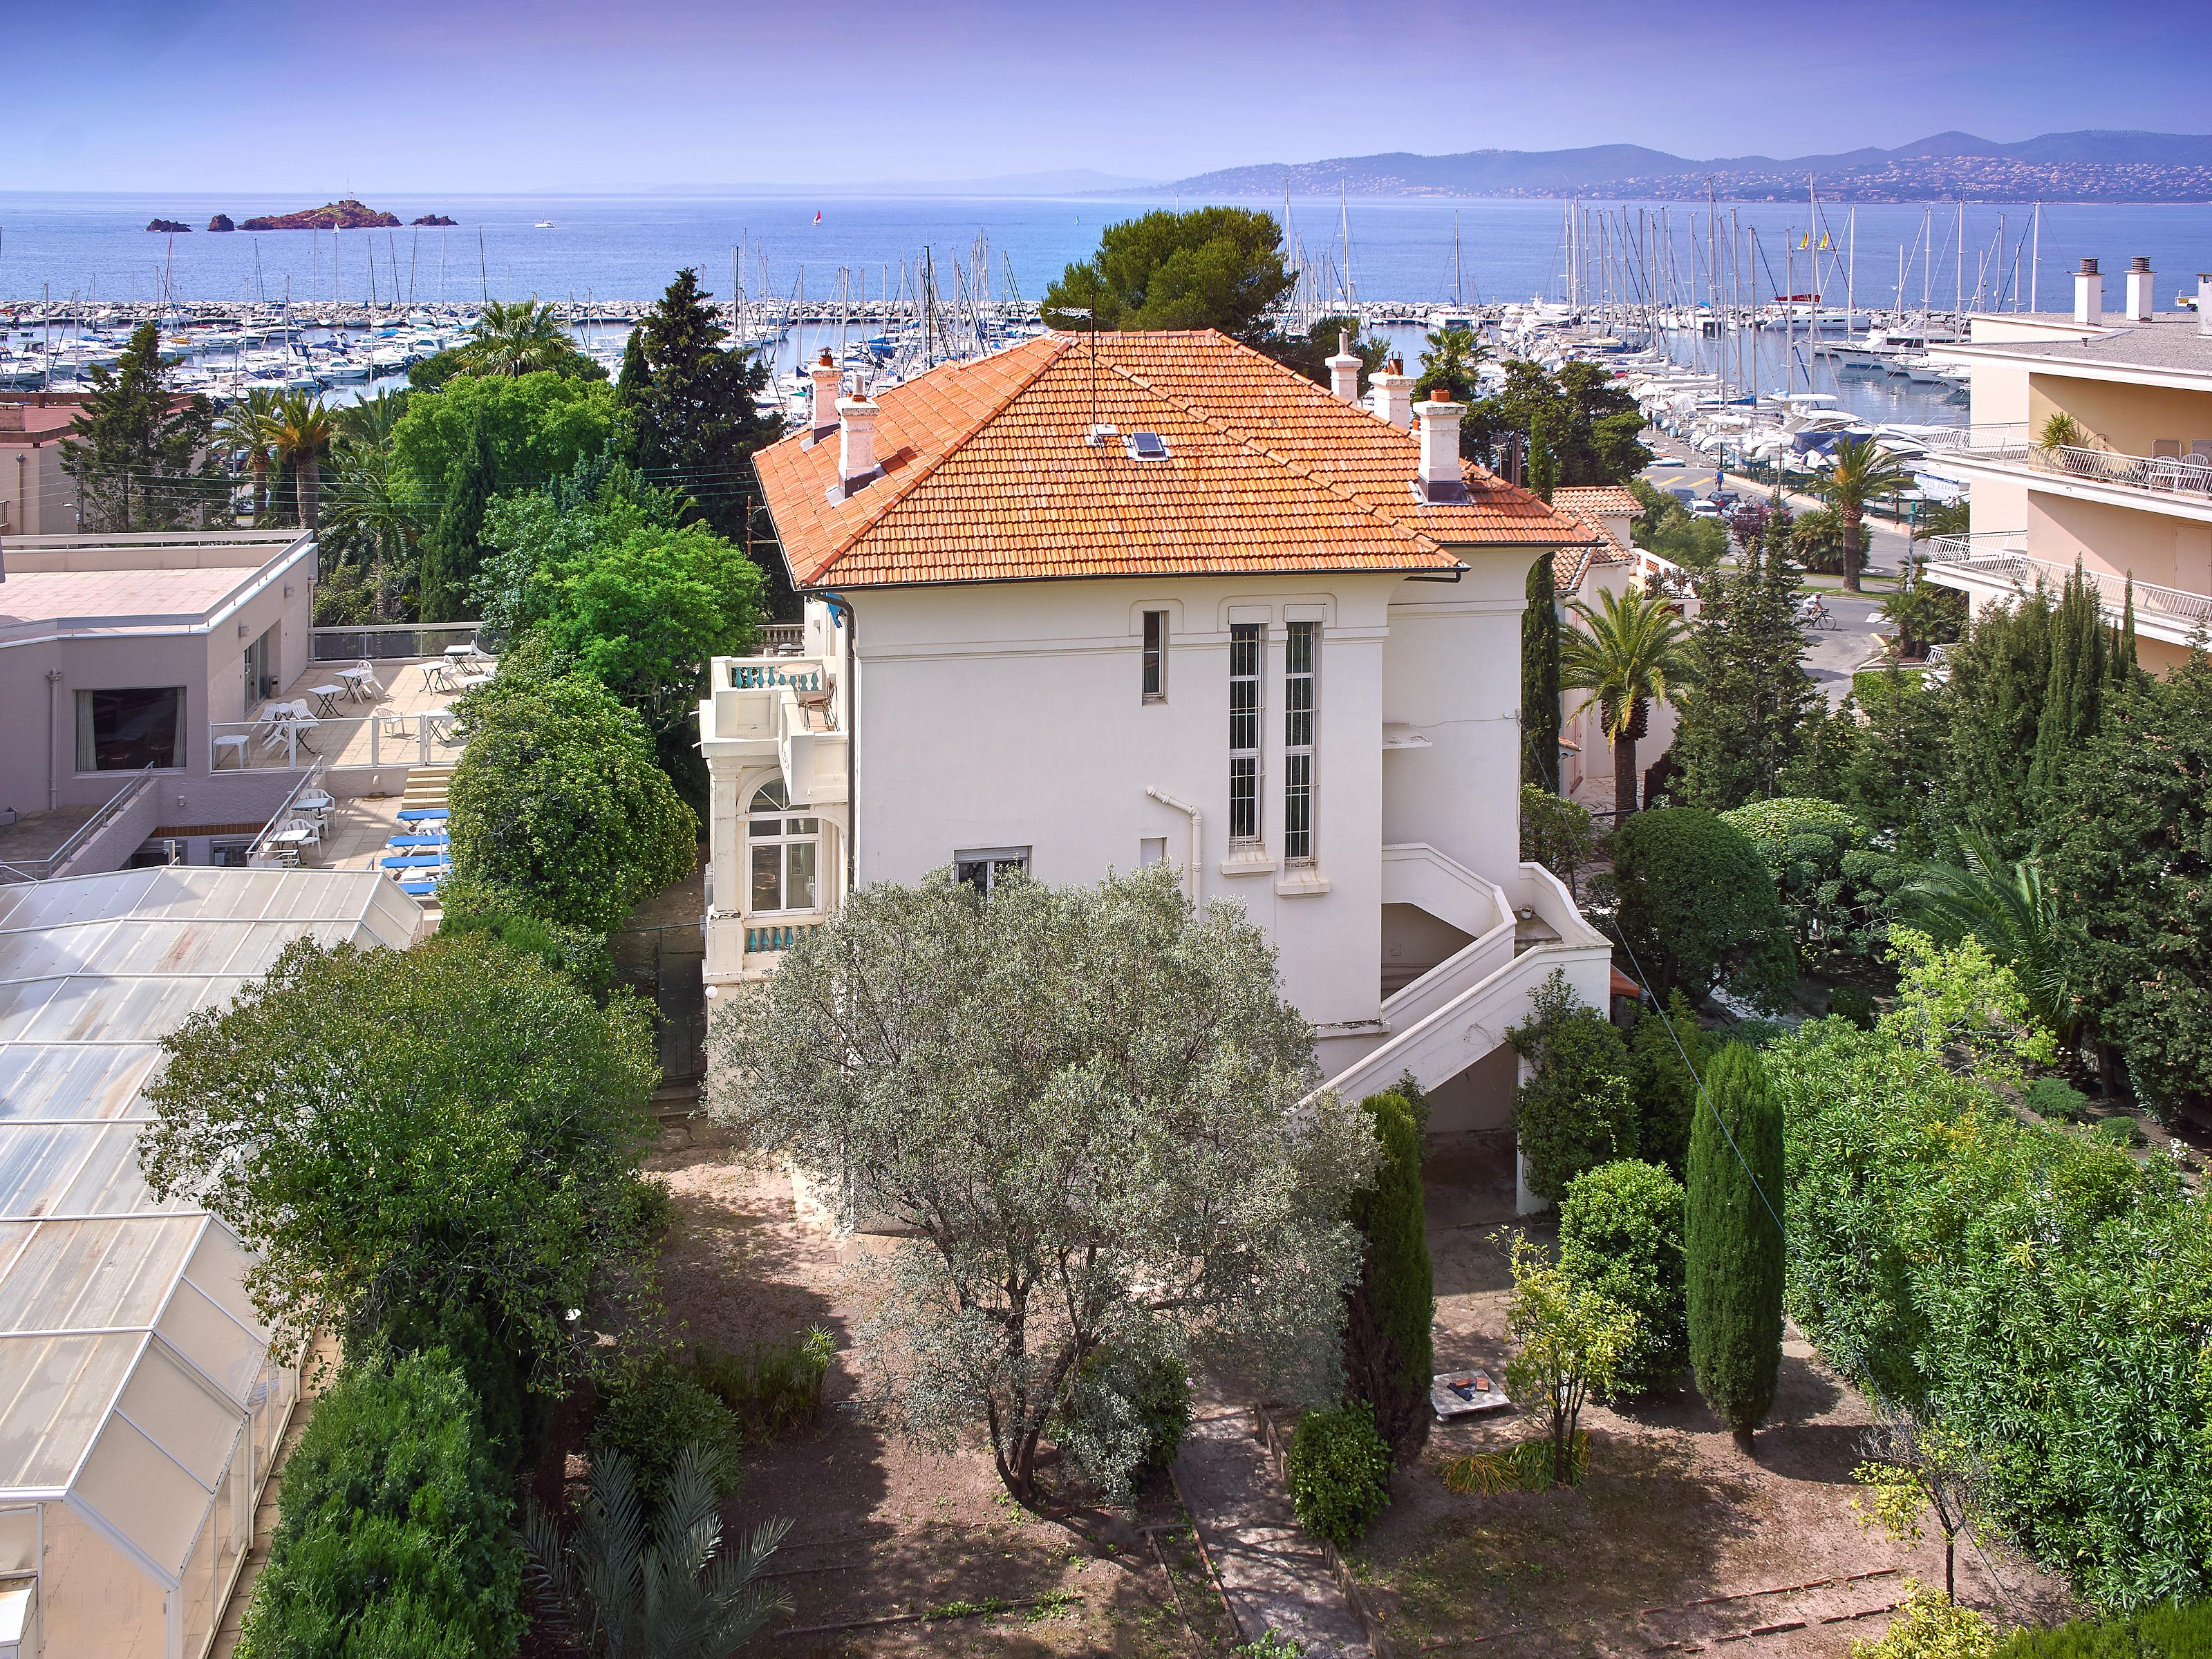 Maison unifamiliale pour l Vente à Elegant period style house with sea views Saint Raphael Other Provence-Alpes-Cote D'Azur, Provence-Alpes-Cote D'Azur 83700 France